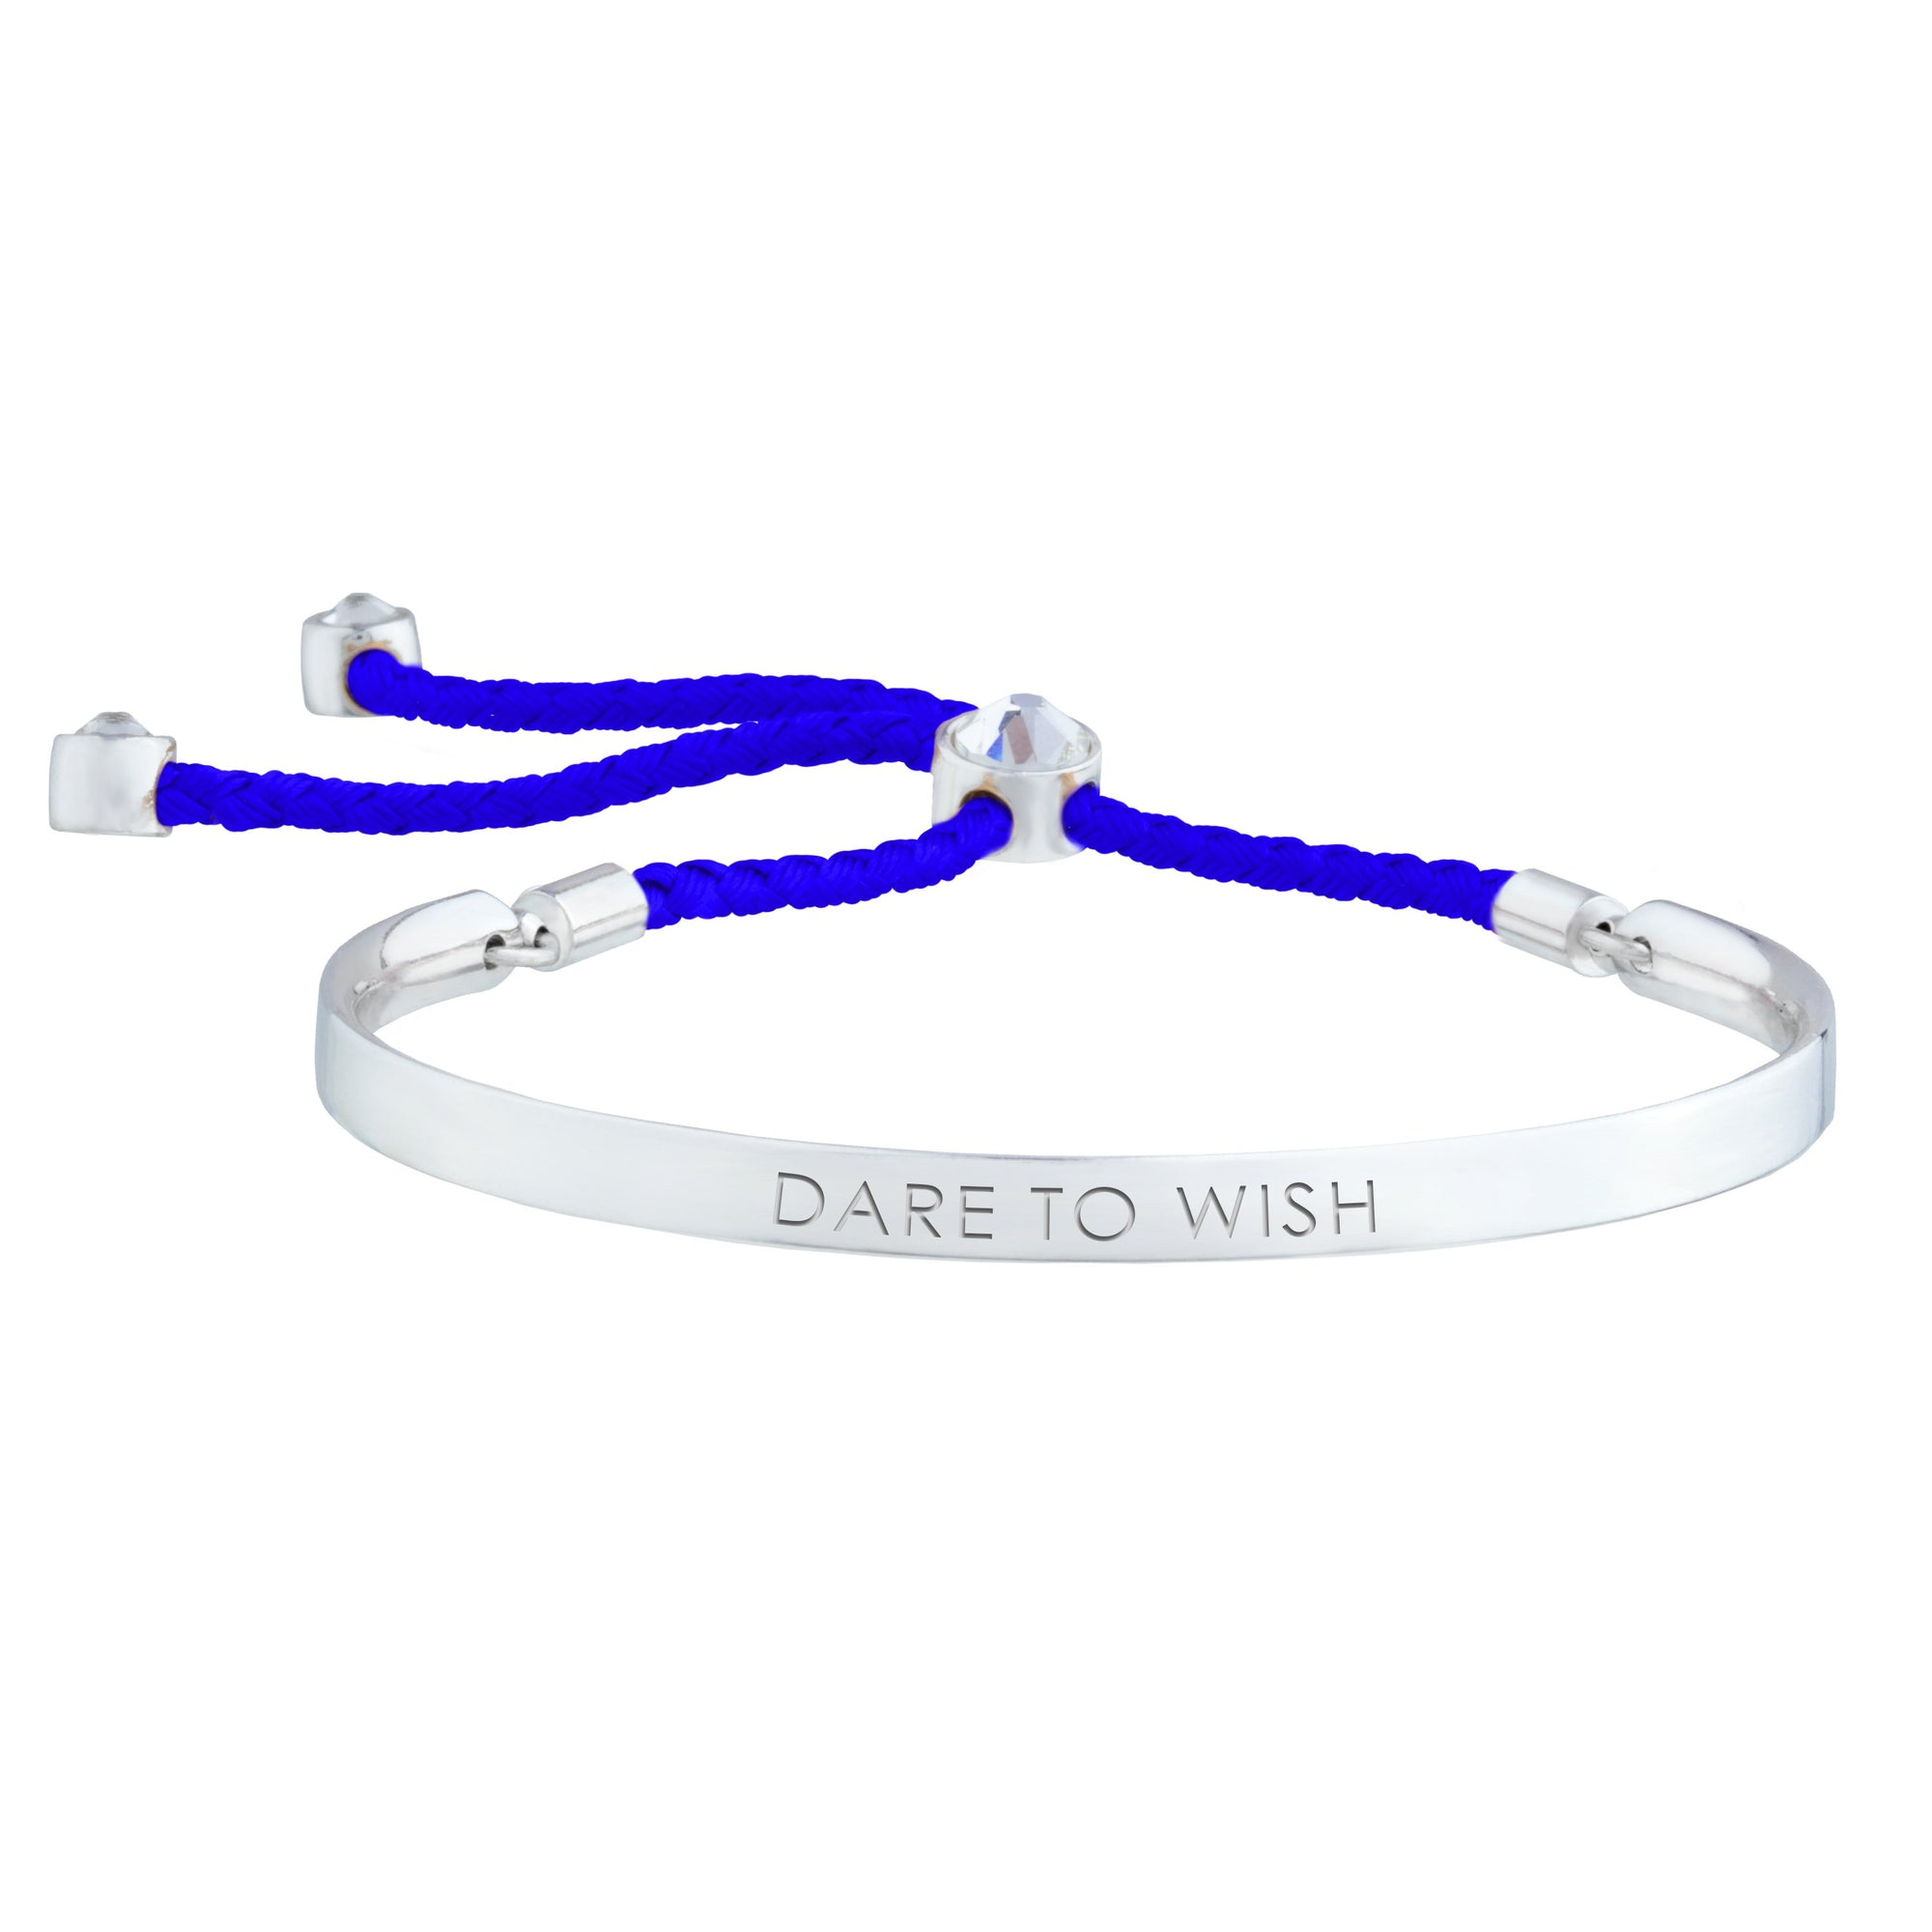 WOE BRACELET DARE TO WISH